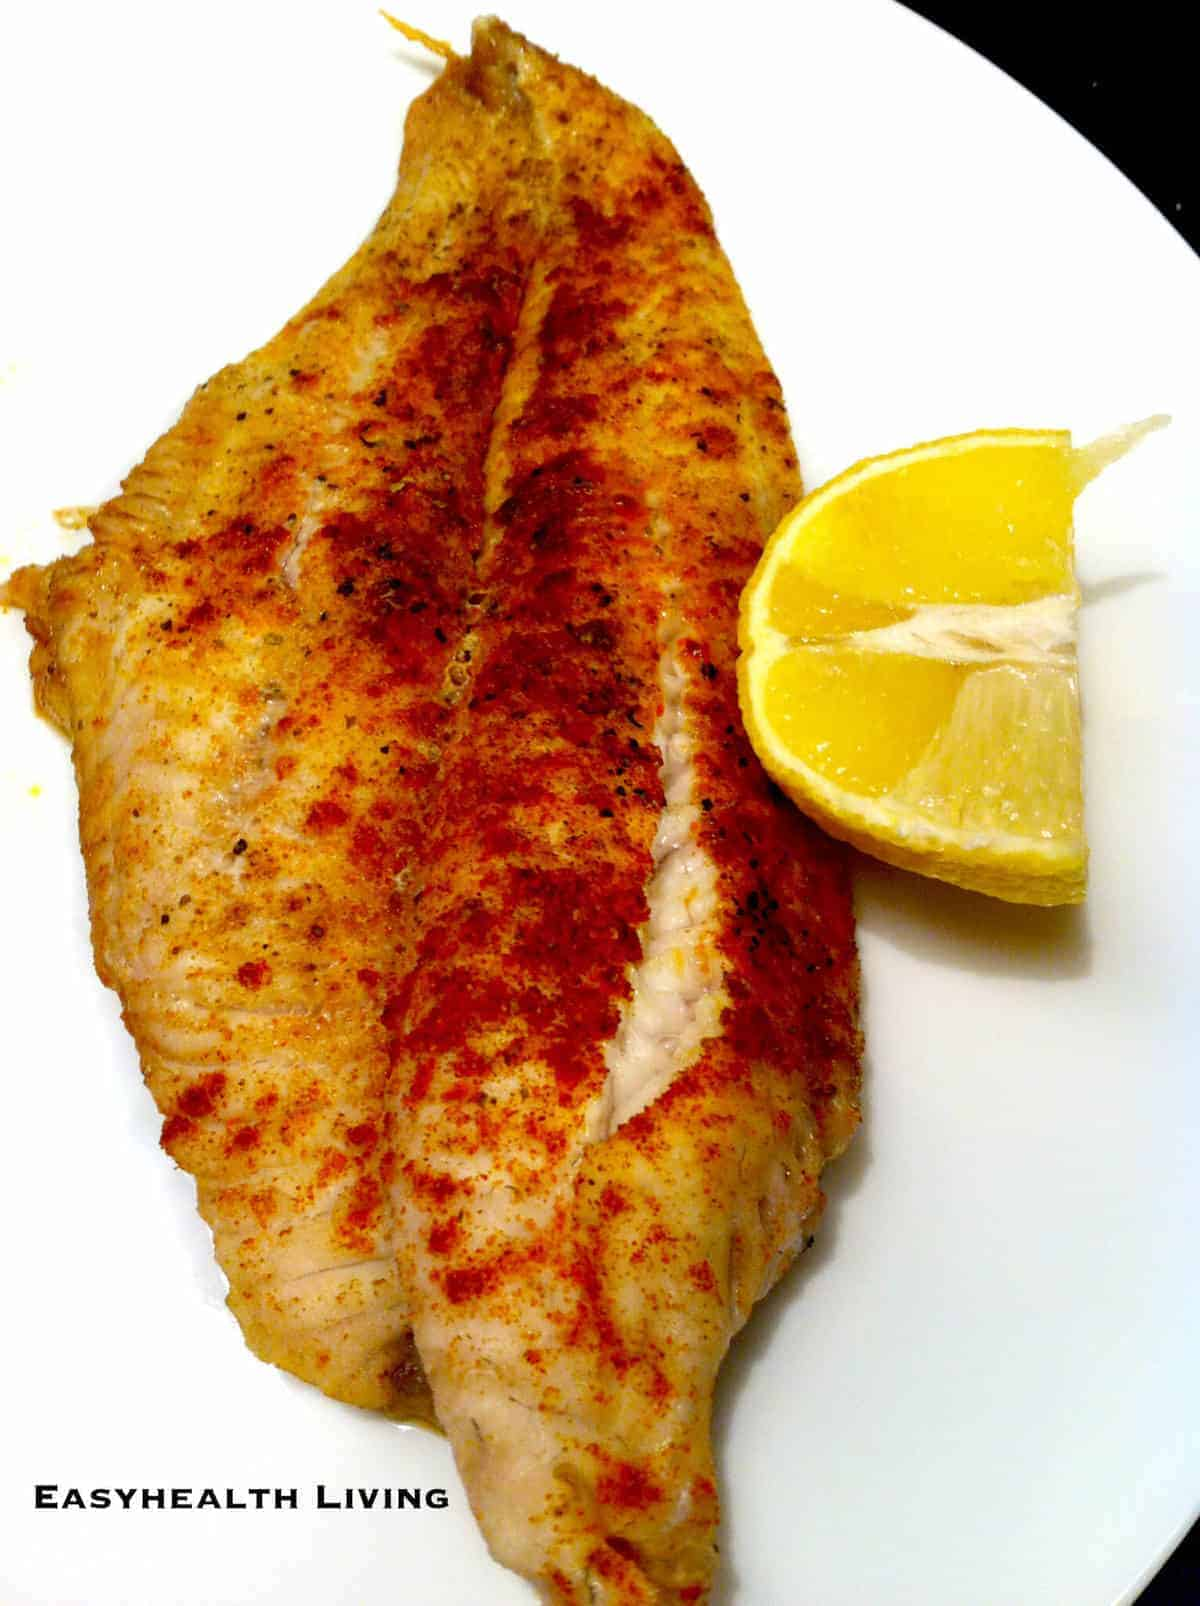 Low carb baked fish uses tasty seasonings and herbs to make the perfect healthy meal.  Chooses a low sodium seasoning if you are watching your salt intake. #bakedfish #lowcarb